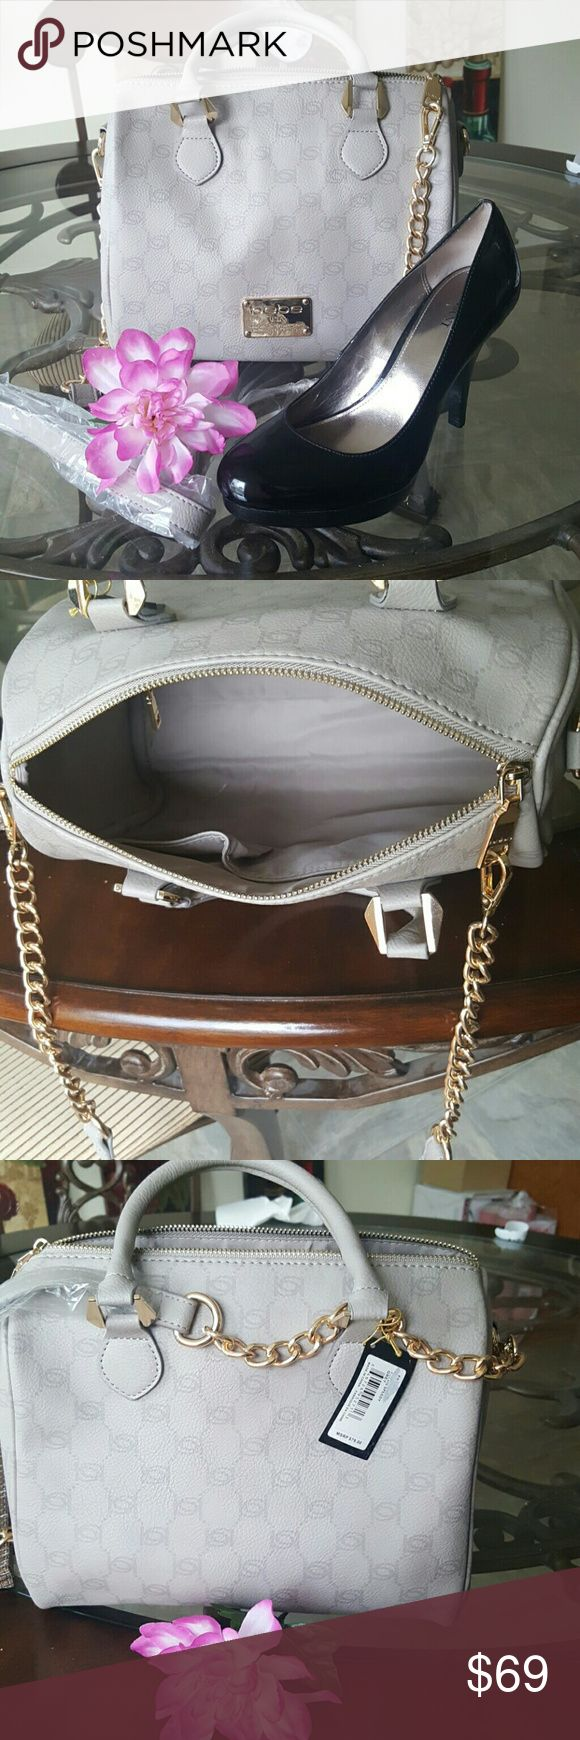 Bebe purse Sophisticated beige/grey bebe purse with gold accents. Includes detachable shoulder strap. Dimensions are 9.5 inches tall and 10.5 inches wide. New never used. bebe Bags Totes